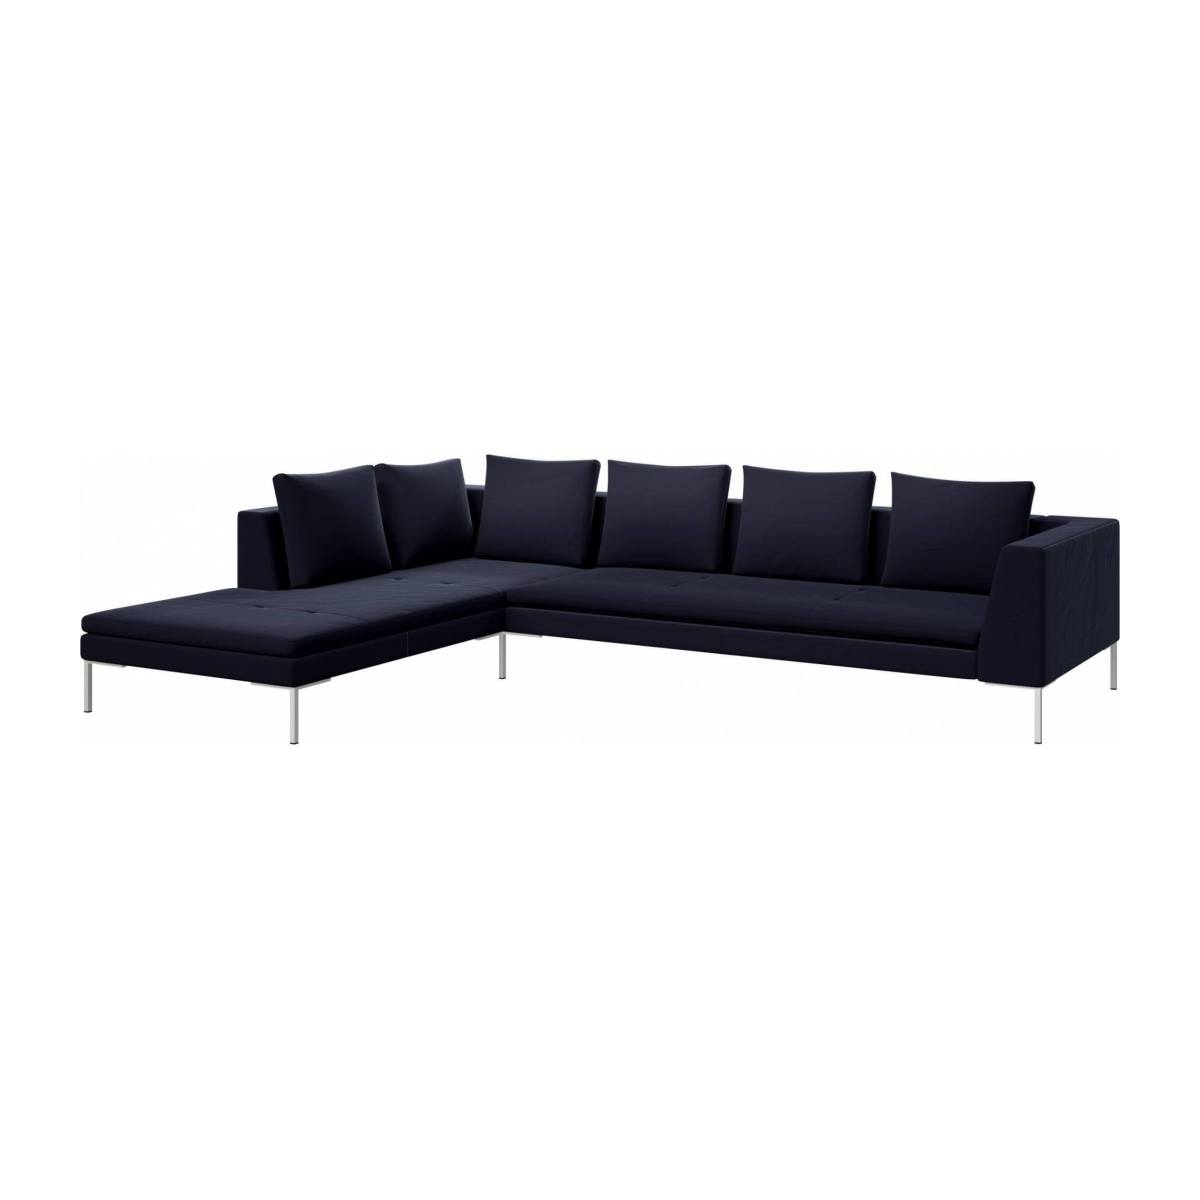 3 seater sofa with chaise longue on the left in Super Velvet fabric, dark blue  n°2